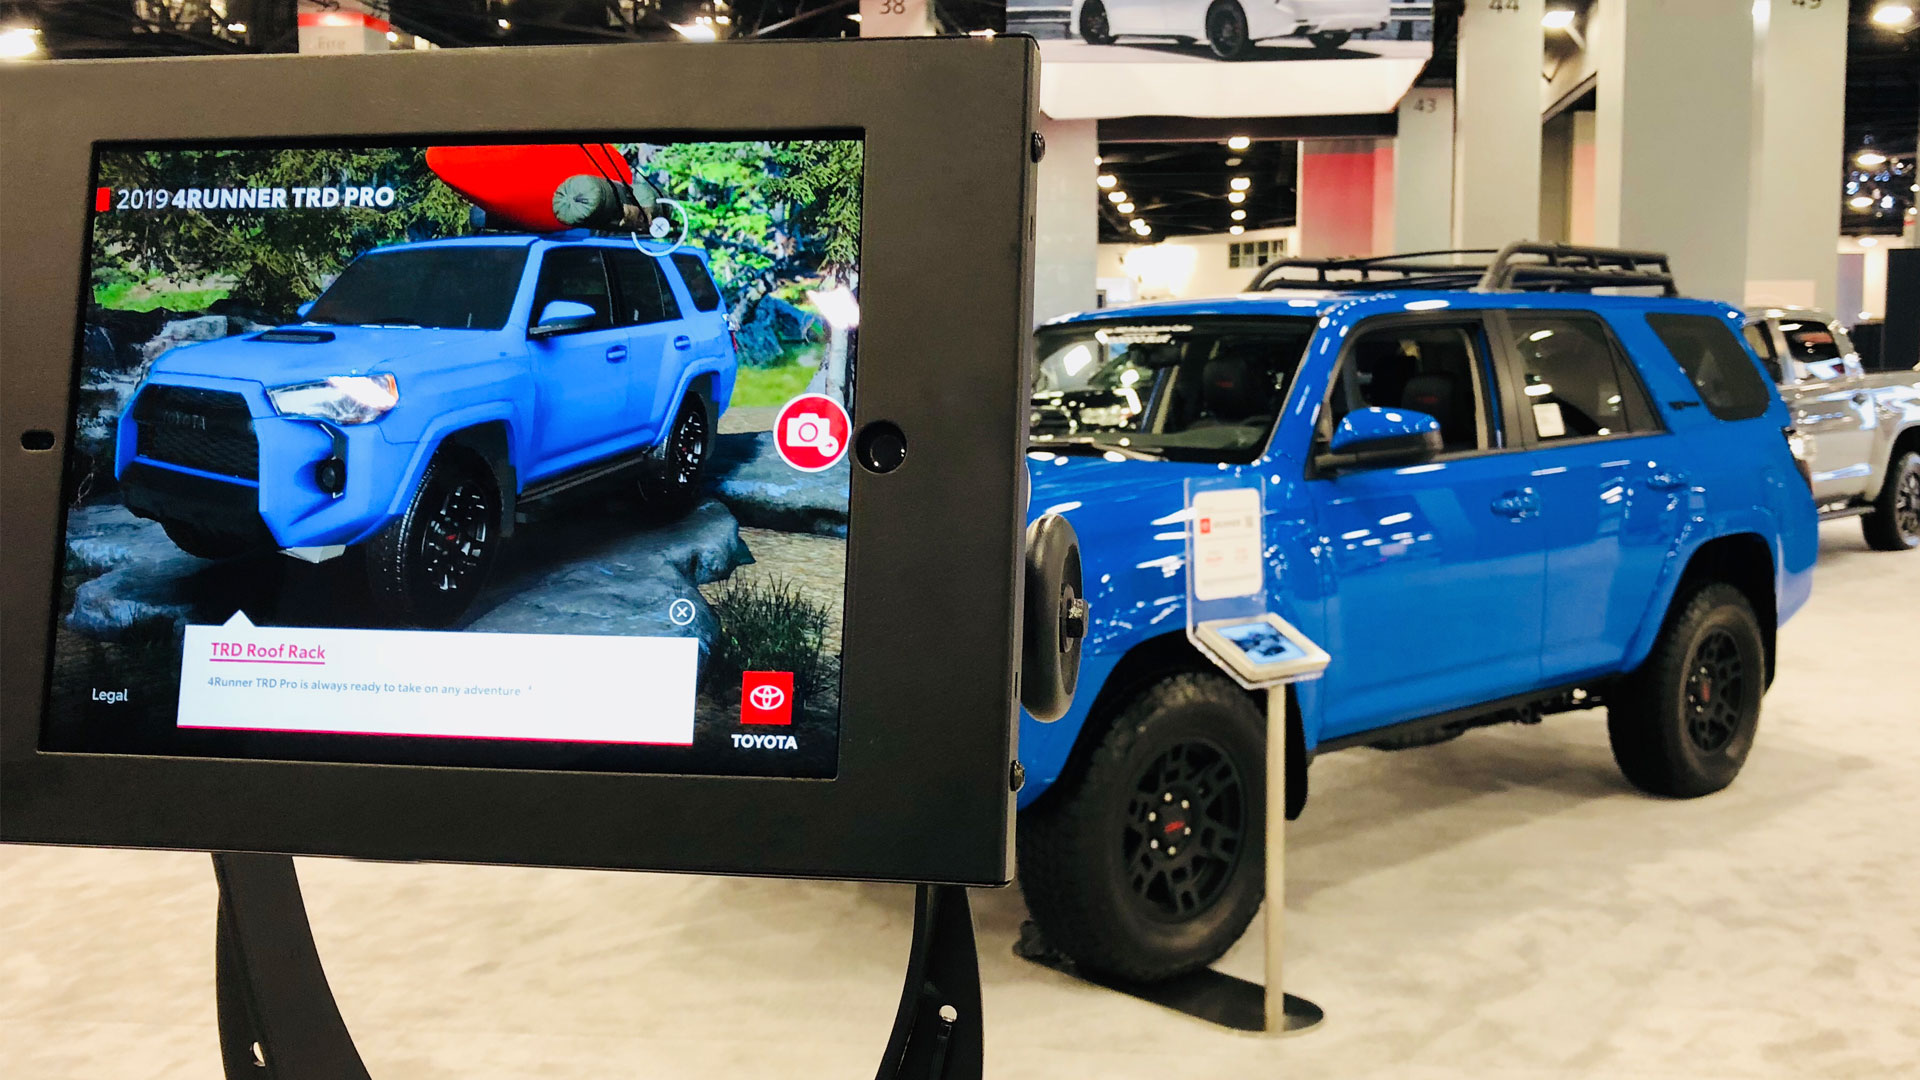 Toyota Trd Pro Augmented Reality Experience Debuts At Auto Shows